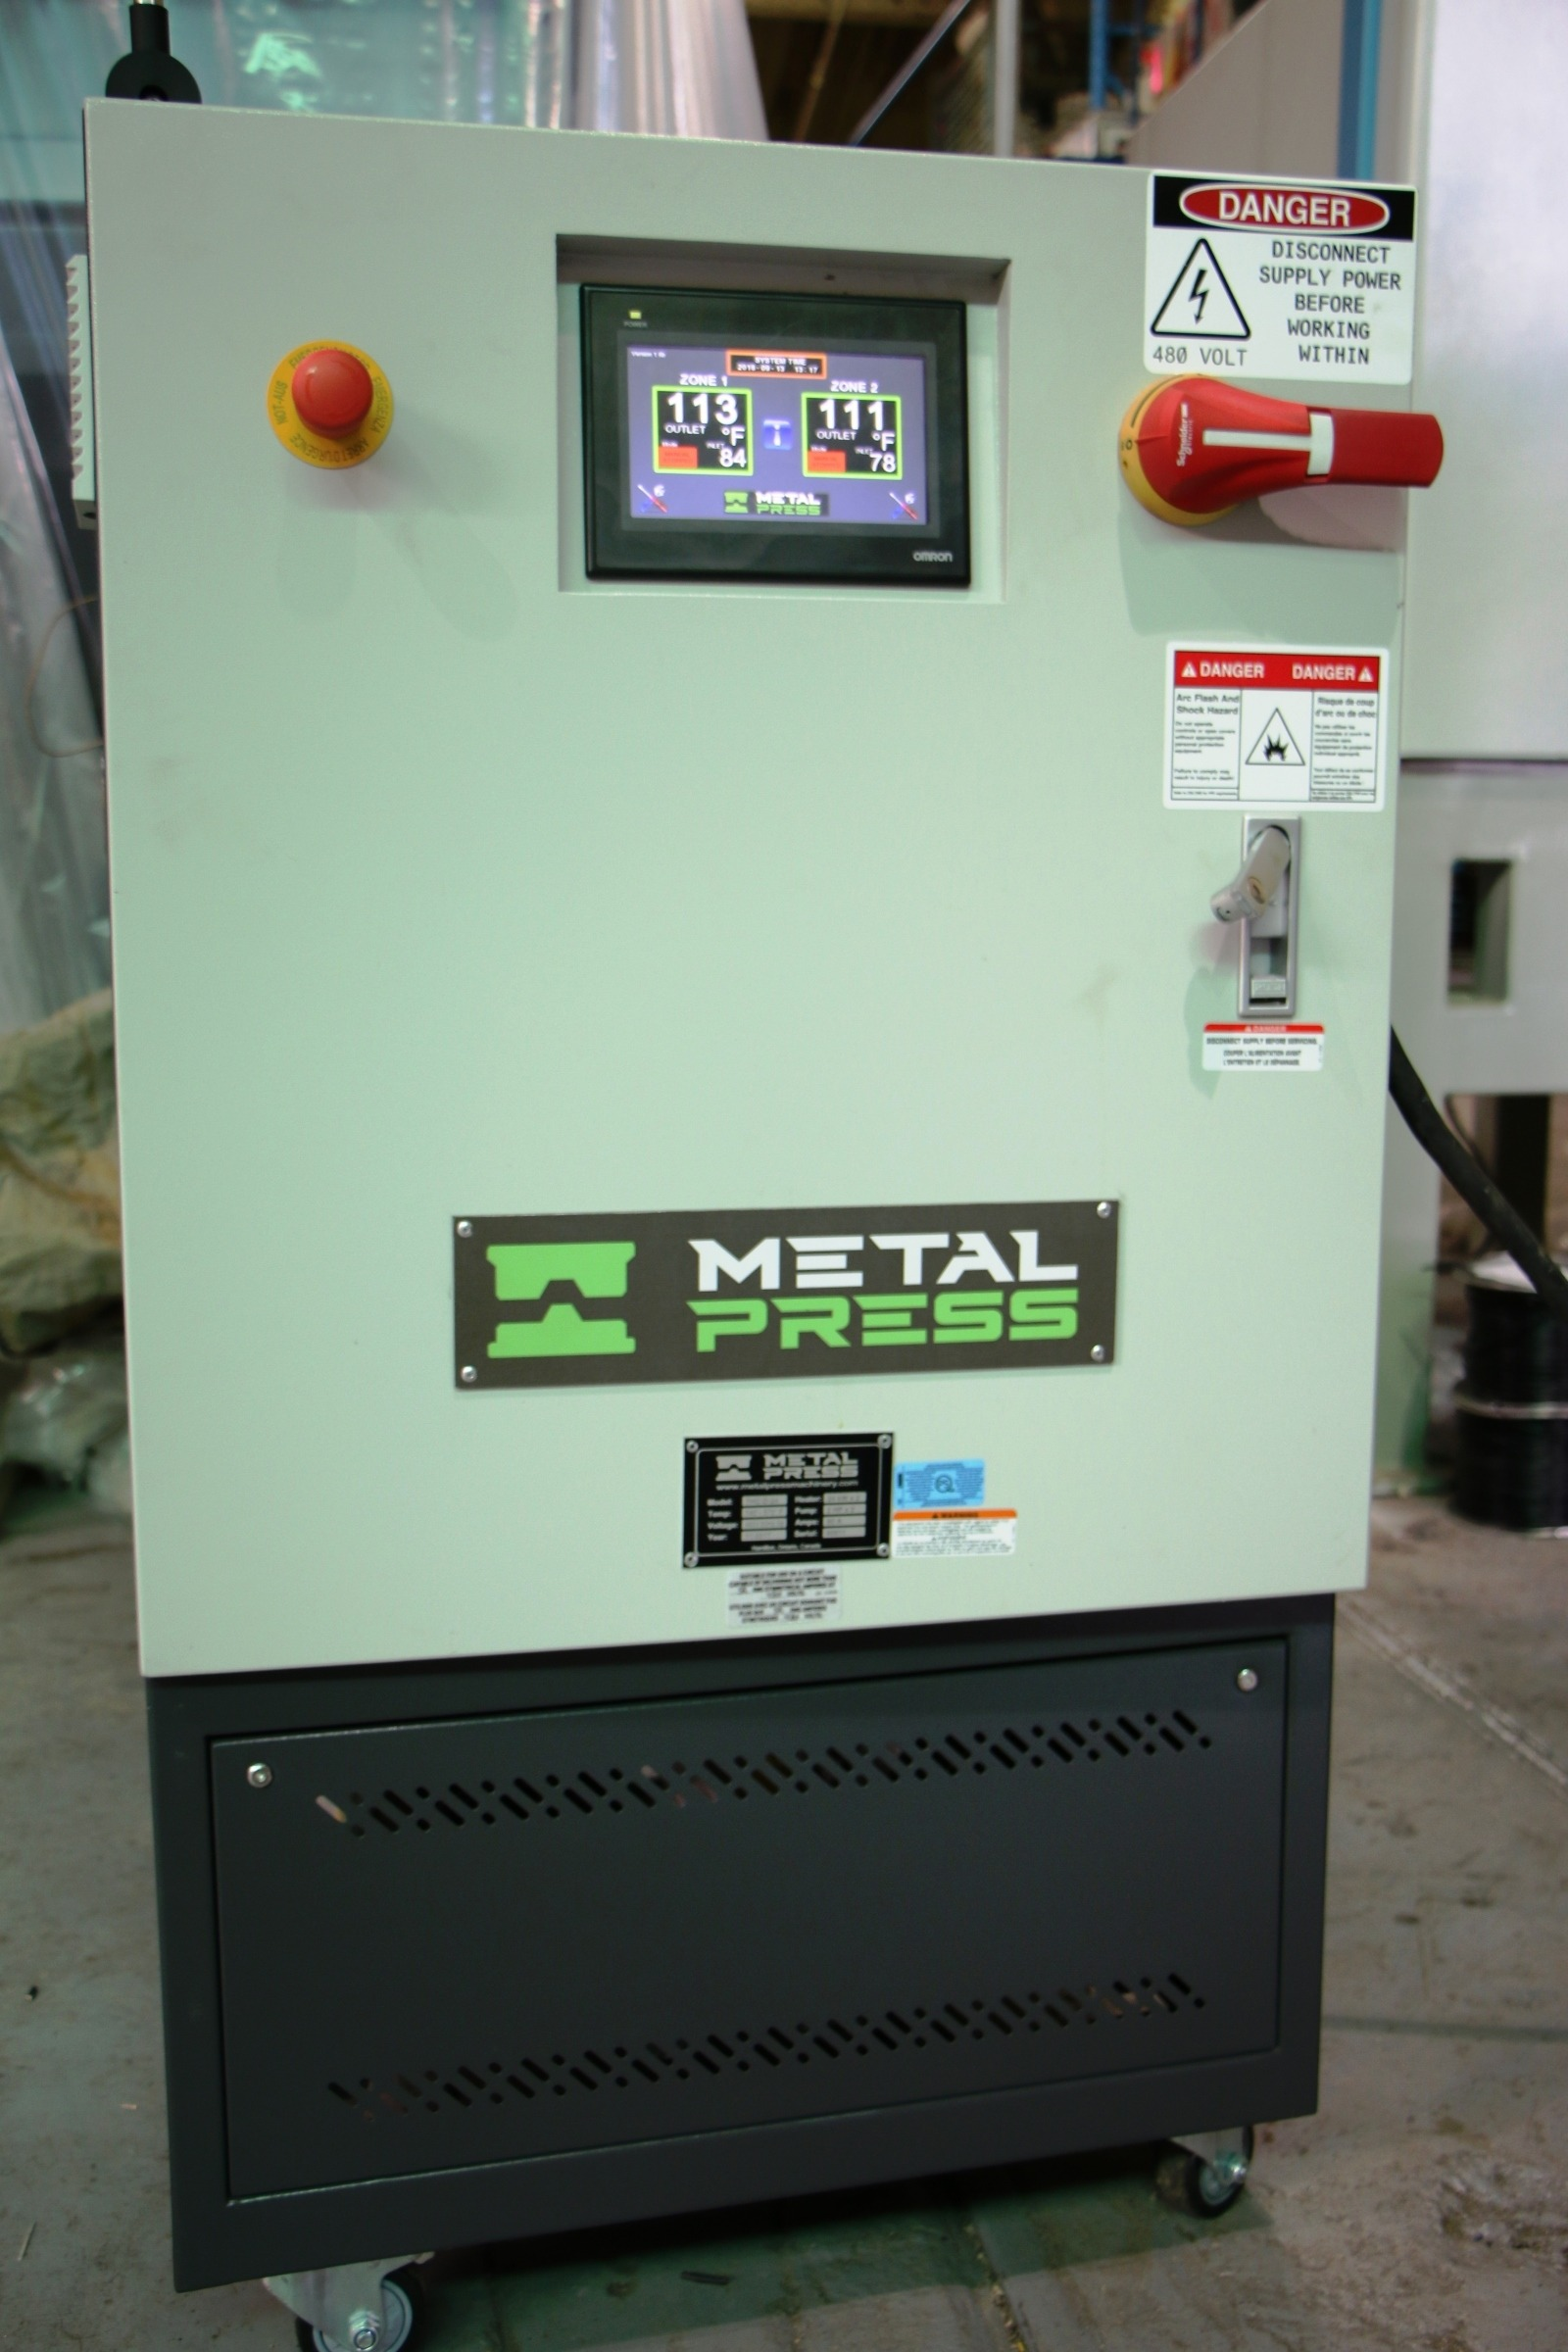 New MetalPress Hot Oil Temperature Control Unit #4718